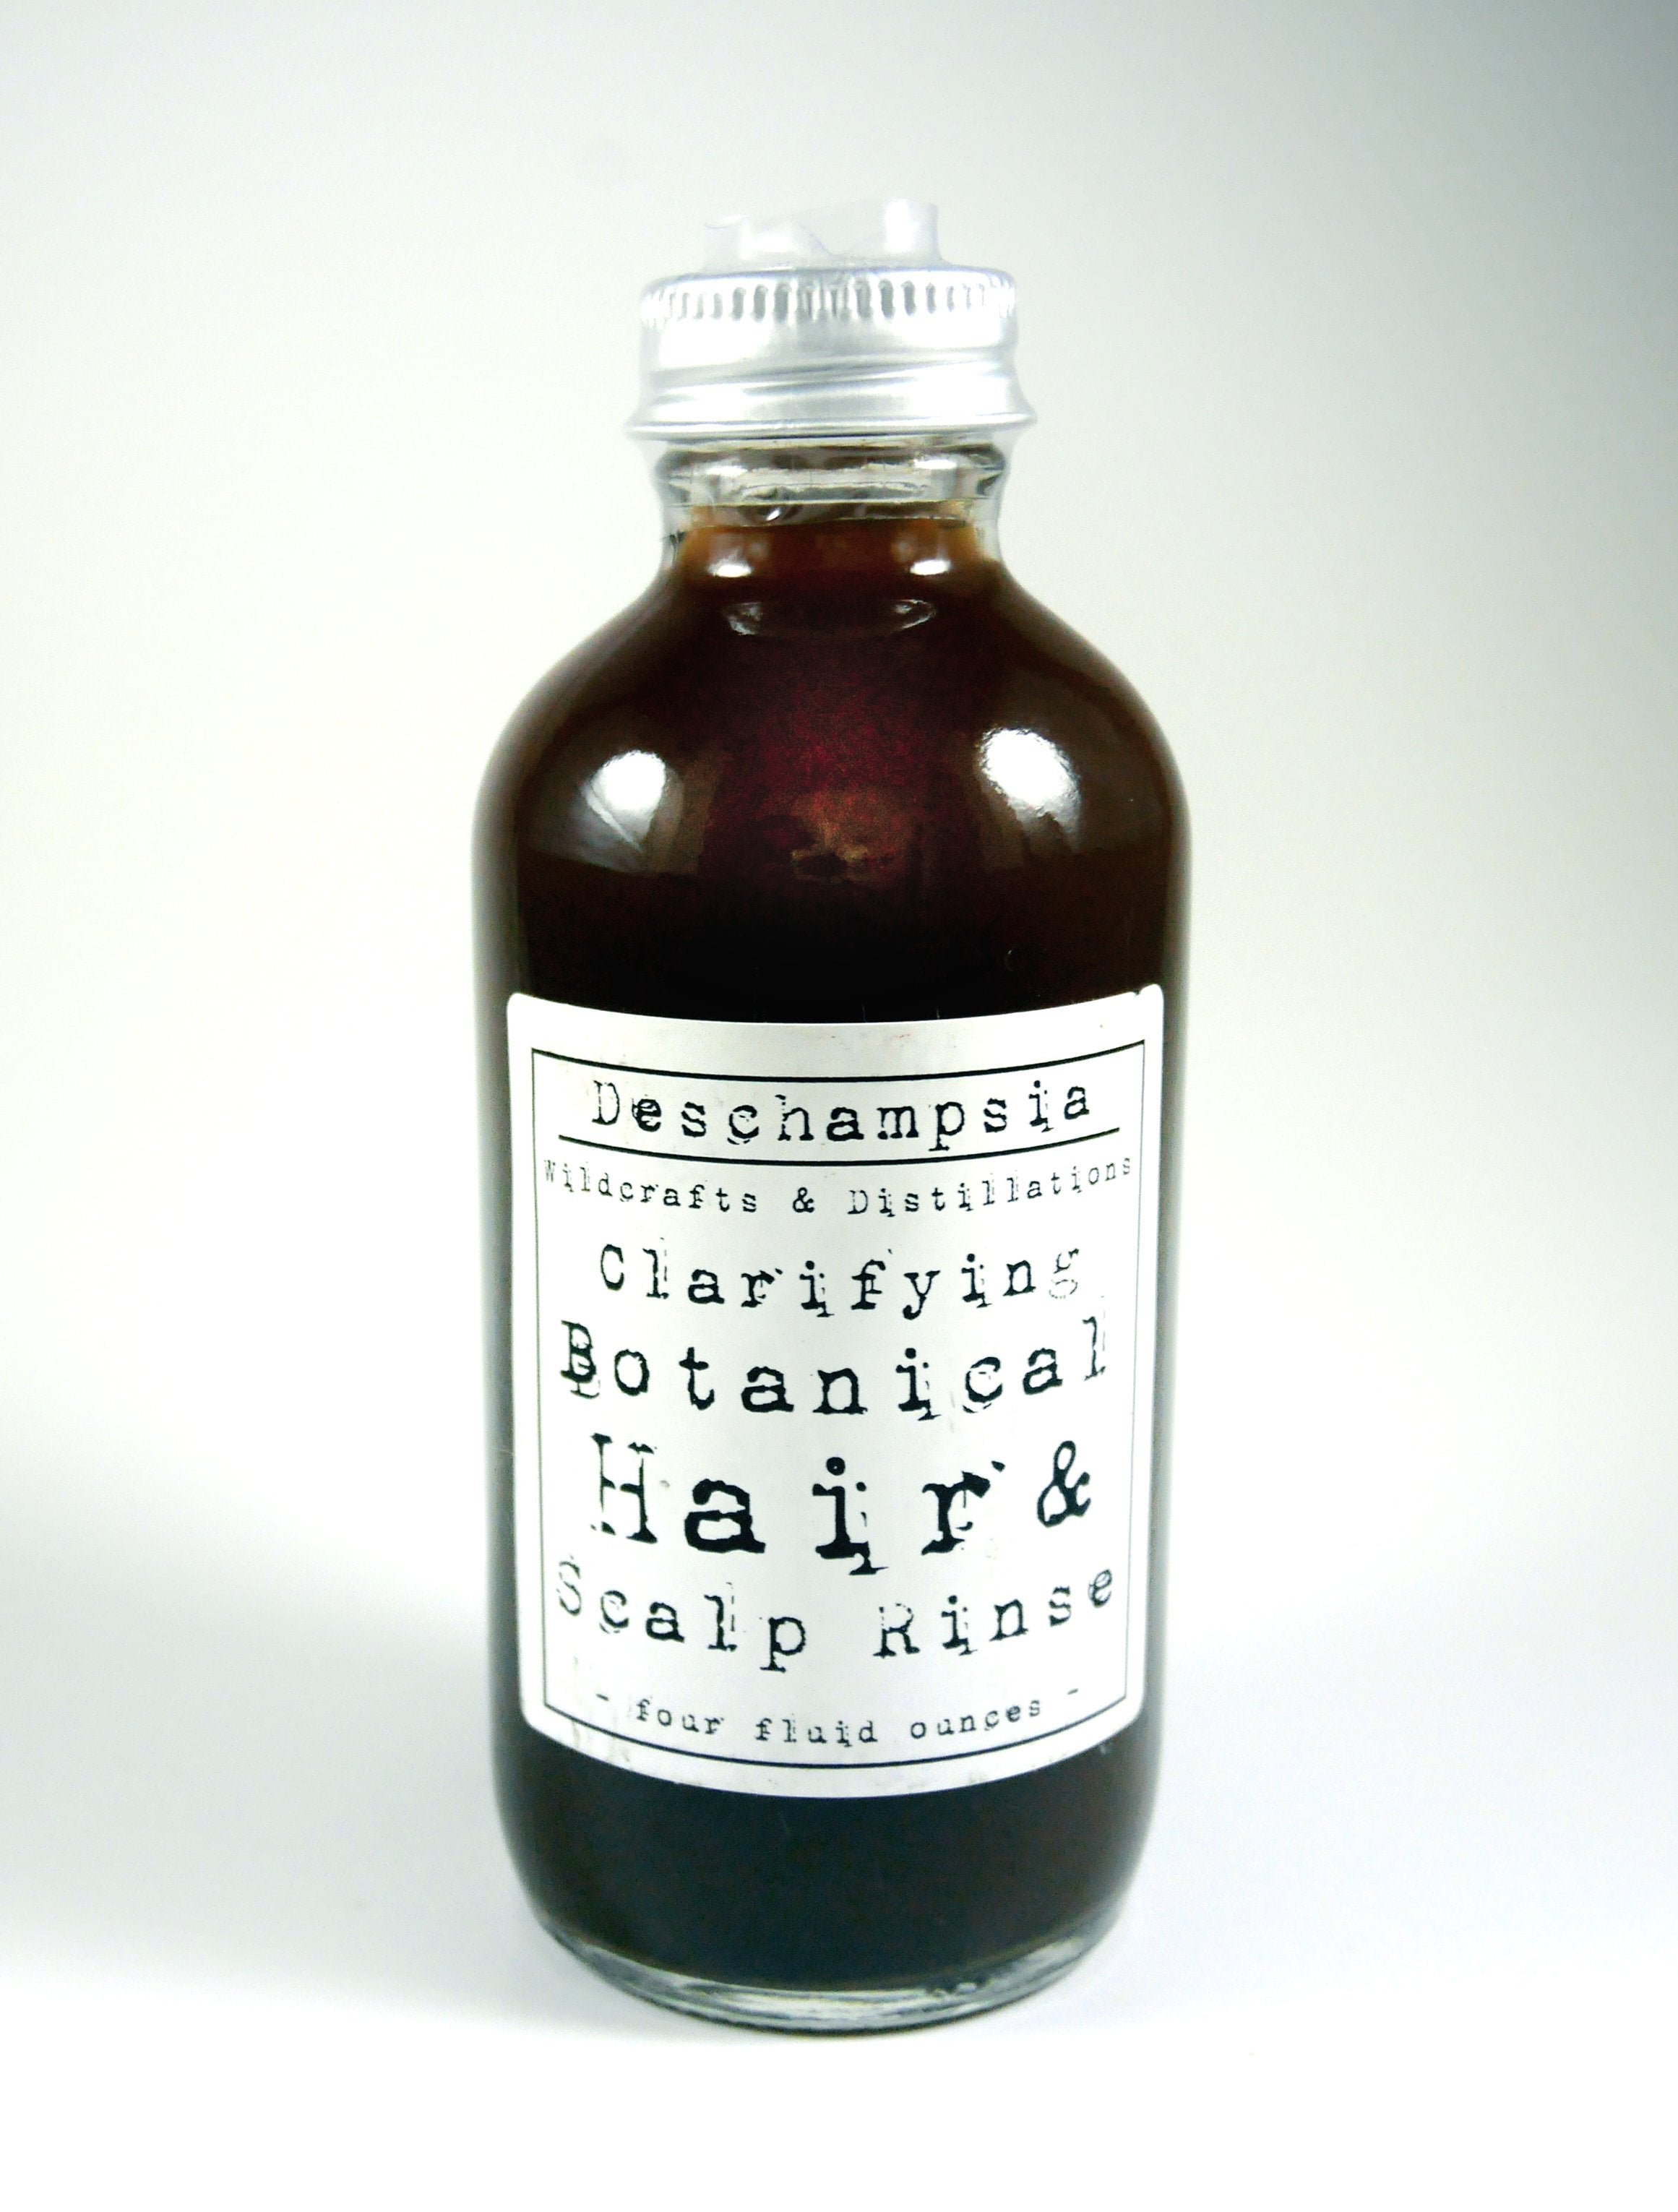 Clarifying Botanical Hair & Scalp Rinse